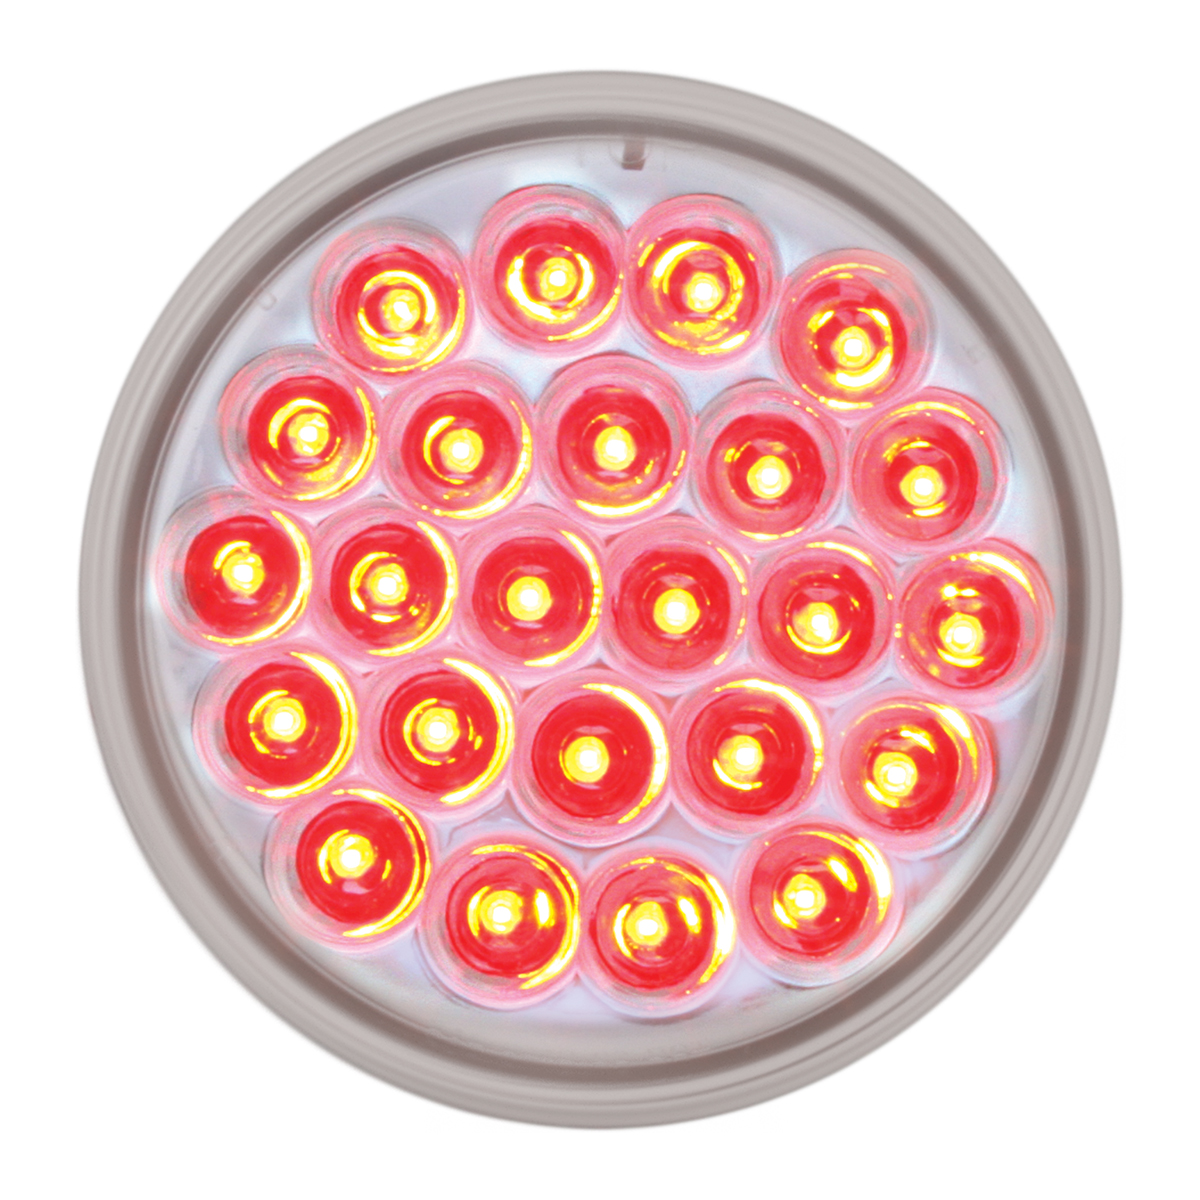 "#78274 4"" Round Pearl LED Flat Red/Clear Light"